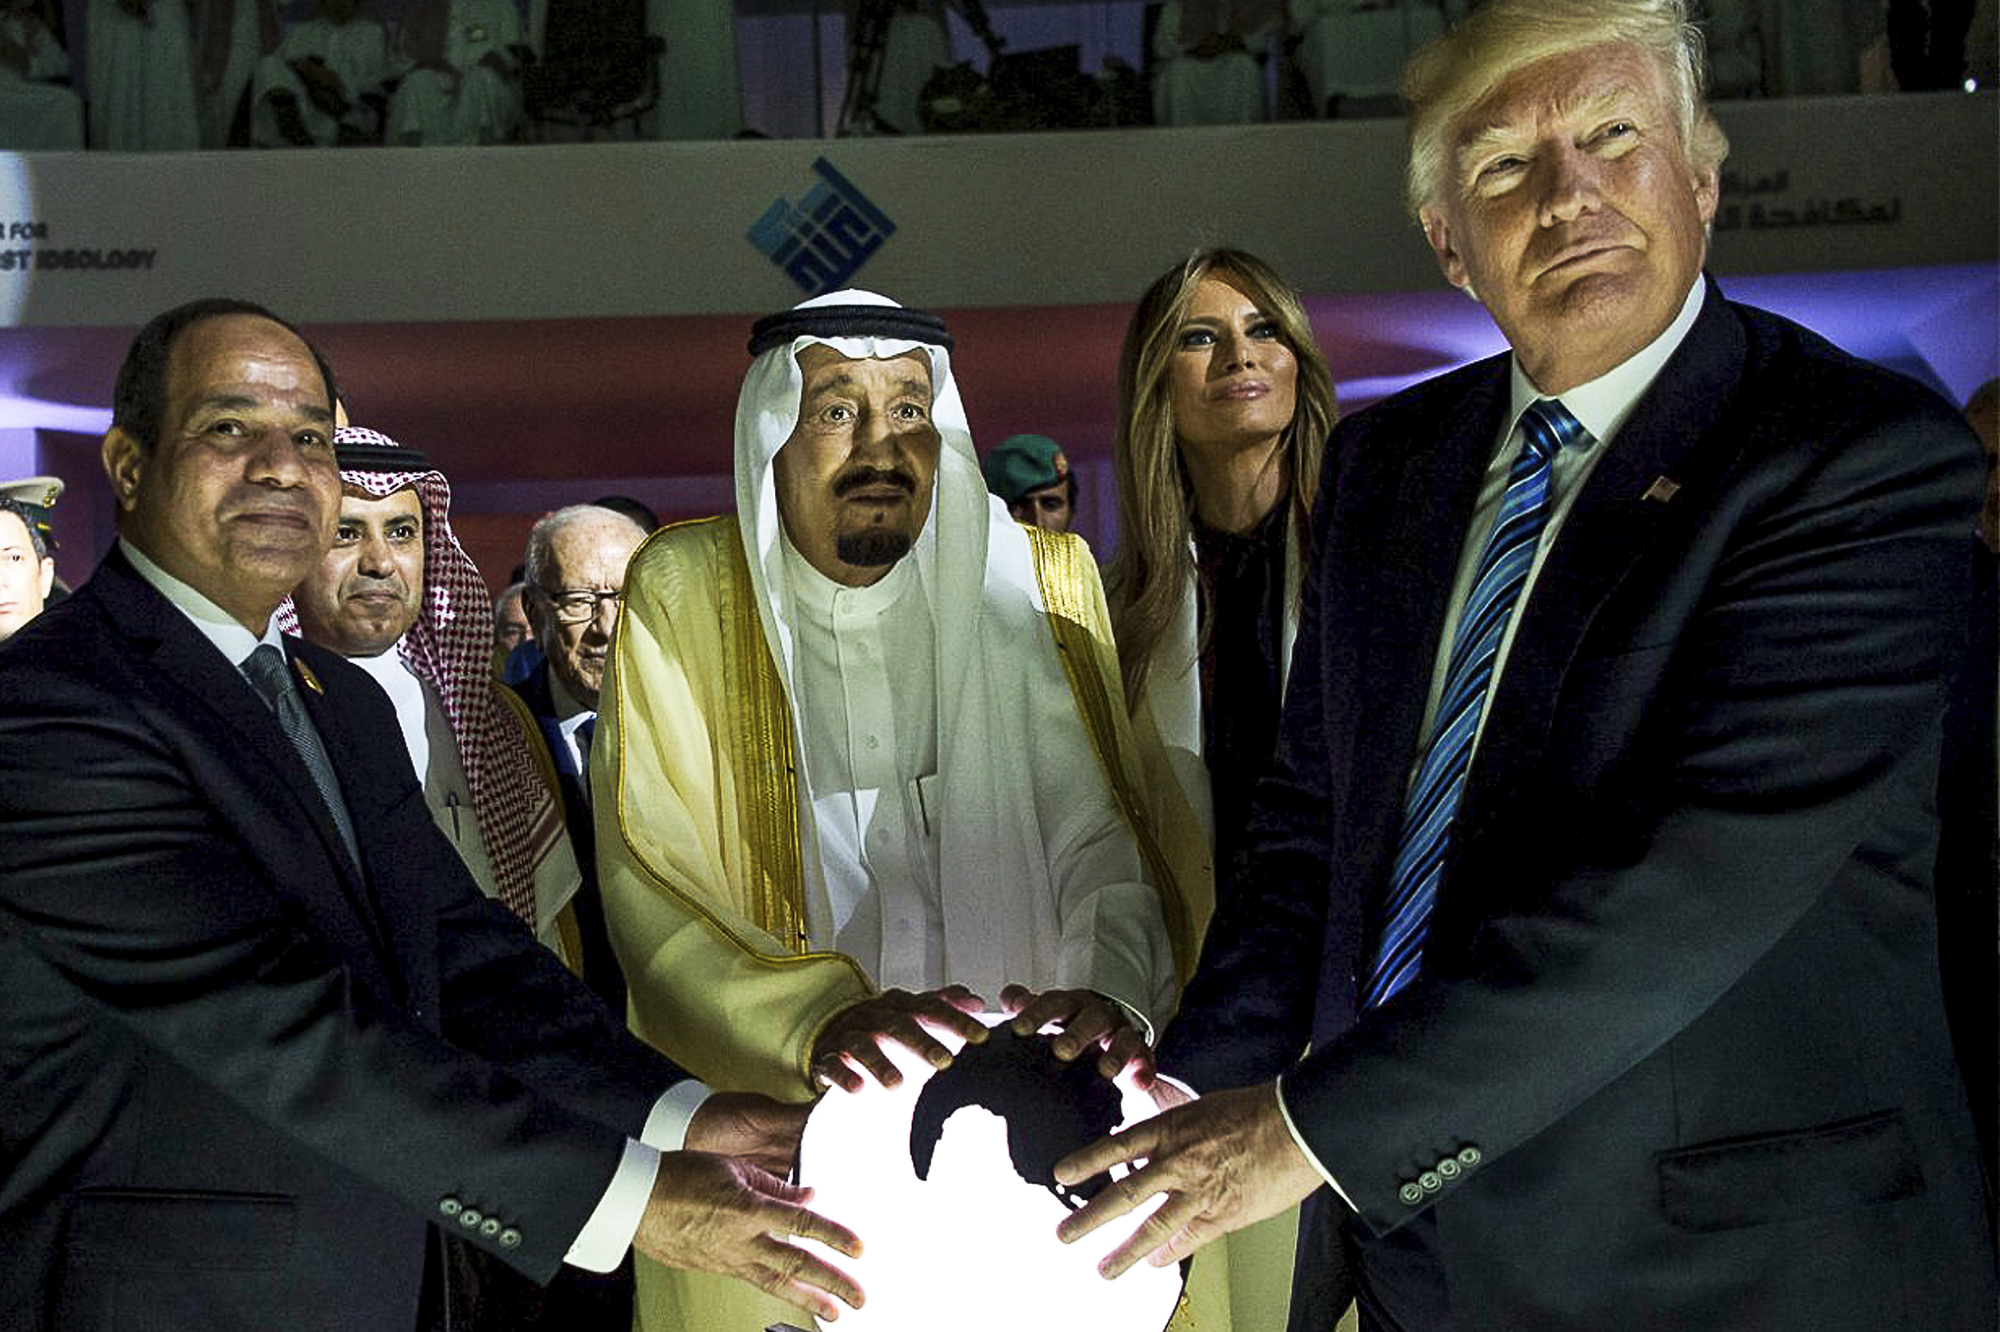 From left: Egyptian president Abdel Fattah al-Sissi, Saudi King Salman bin Abdulaziz Al Saud, Melania Trump, and Donald Trump, visit a center to fight extremism in Riyadh, Saudi Arabia, on May 21, 2017.